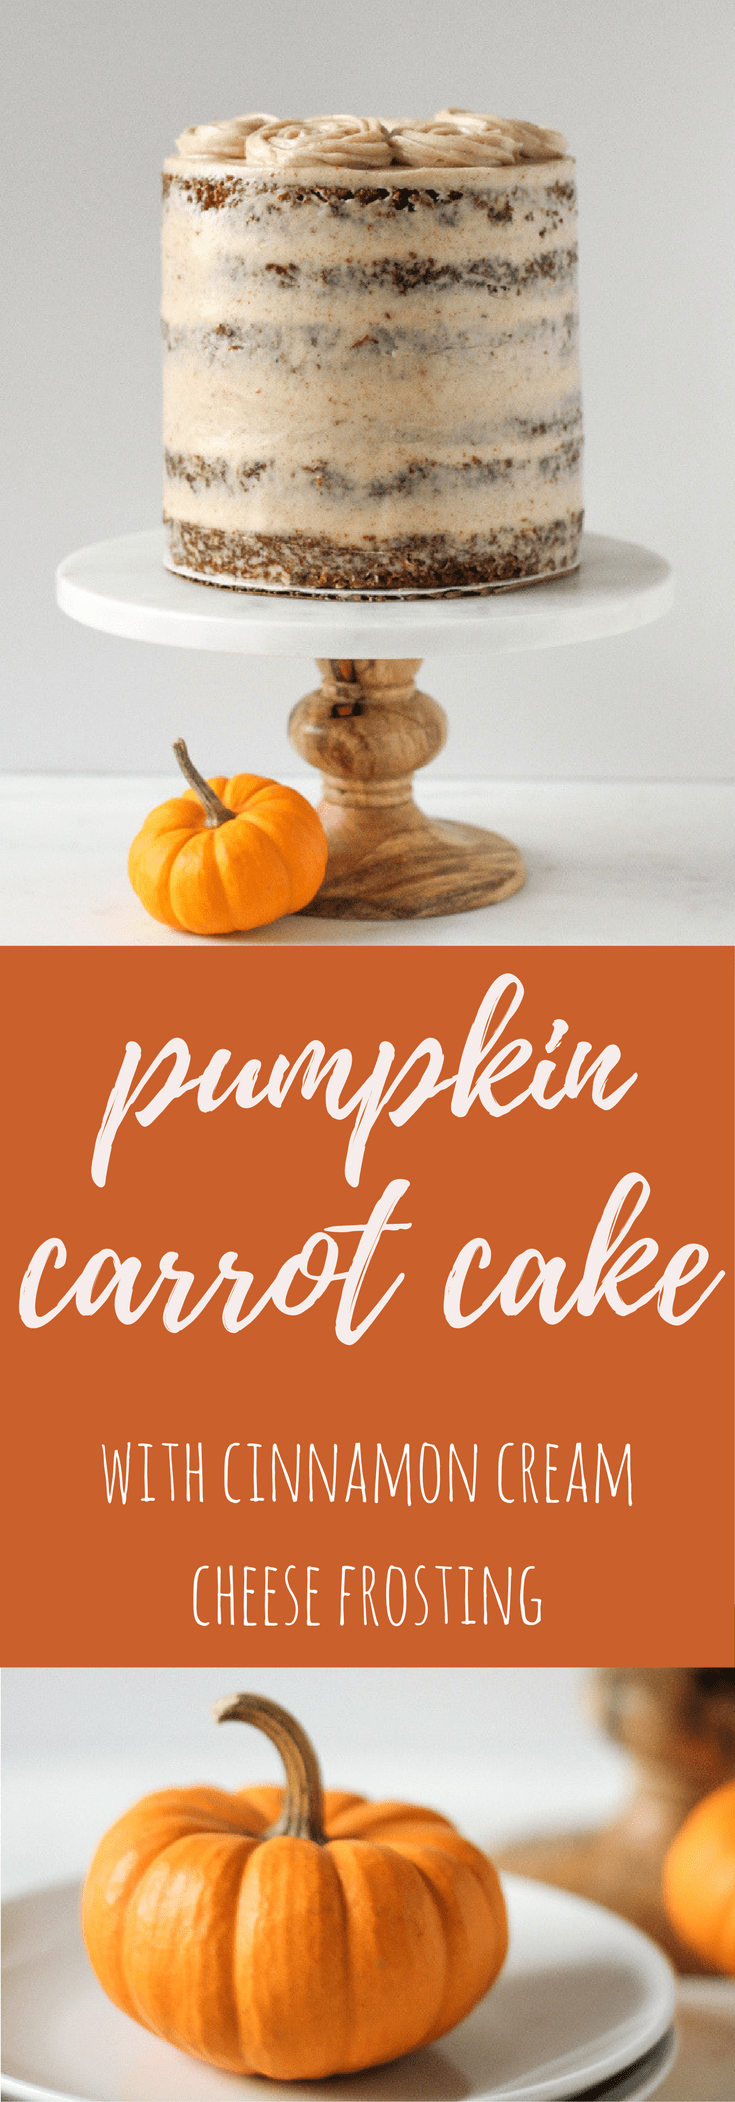 Pumpkin Carrot Cake with Cinnamon Cream Cheese Frosting - Flour Covered Apron